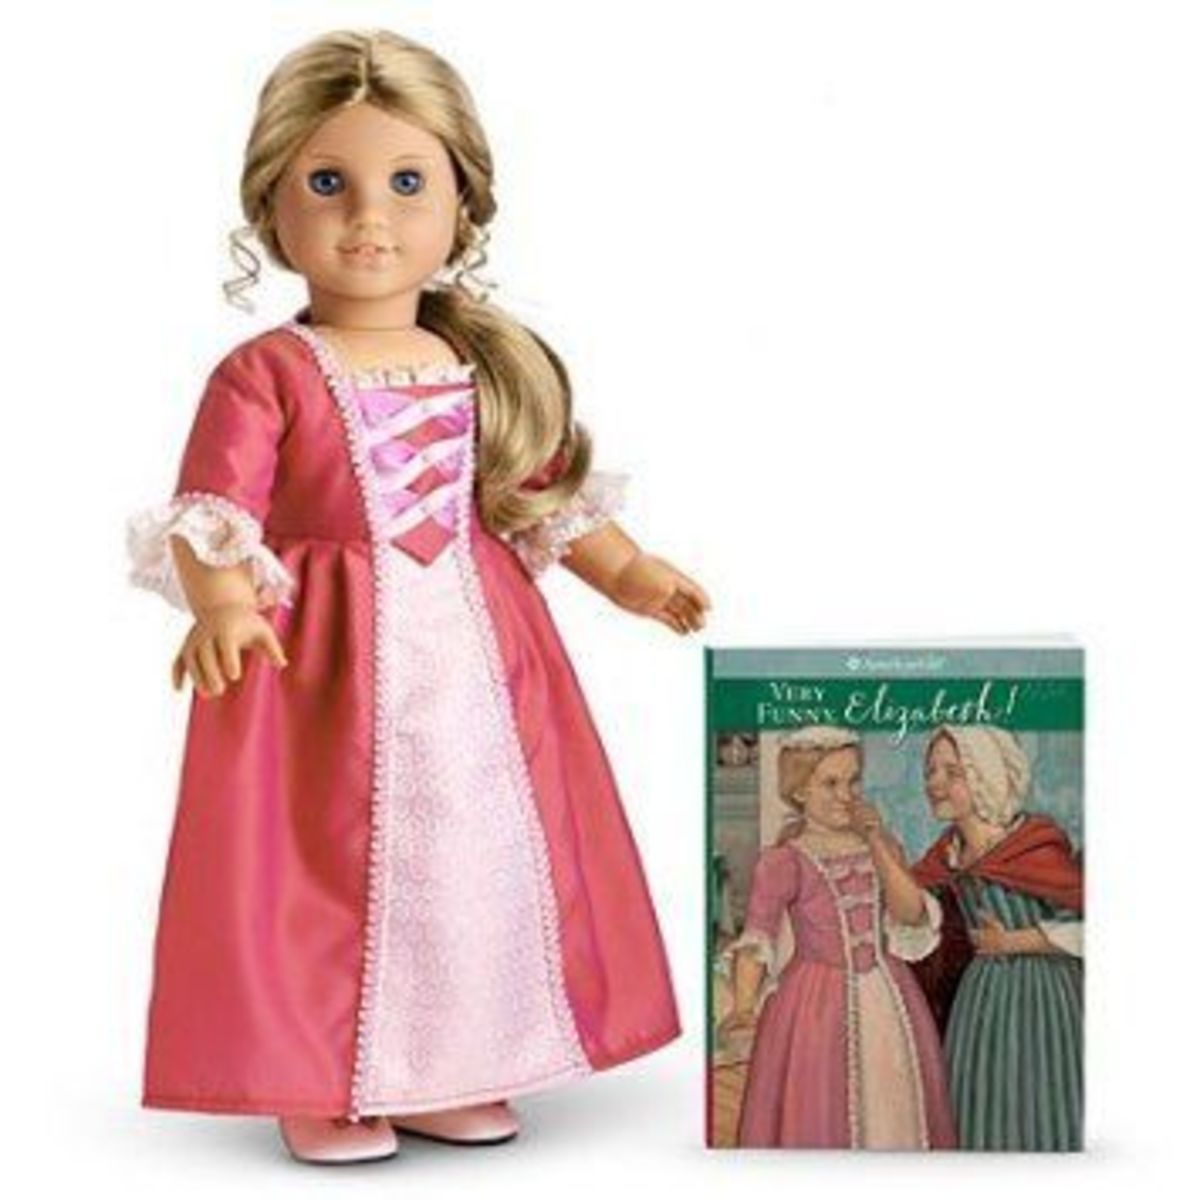 An Elizabeth doll posed in front of the Very Funny, Elizabeth book (Elizabeth's only solo book)